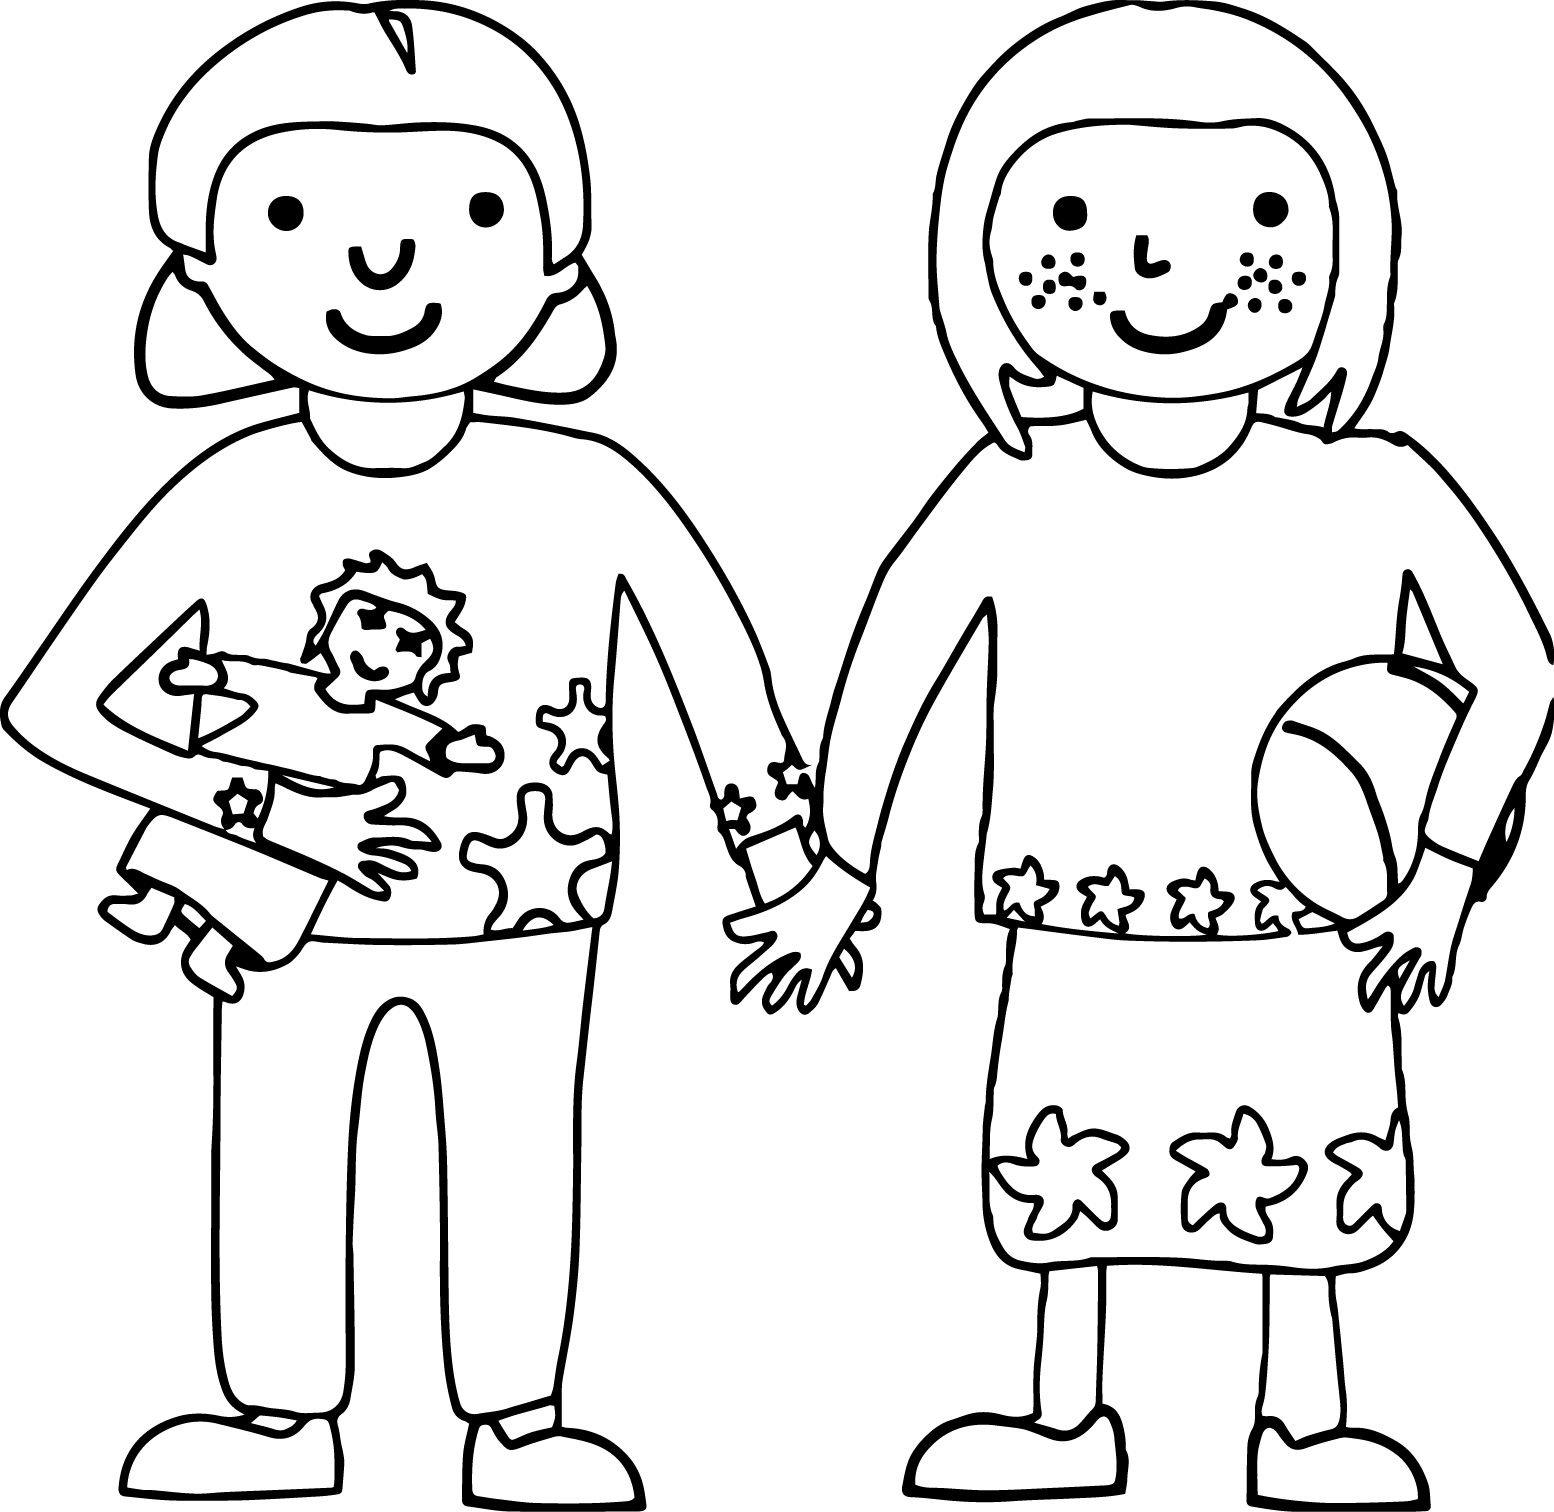 Children friends coloring page for Friends coloring pages for preschoolers